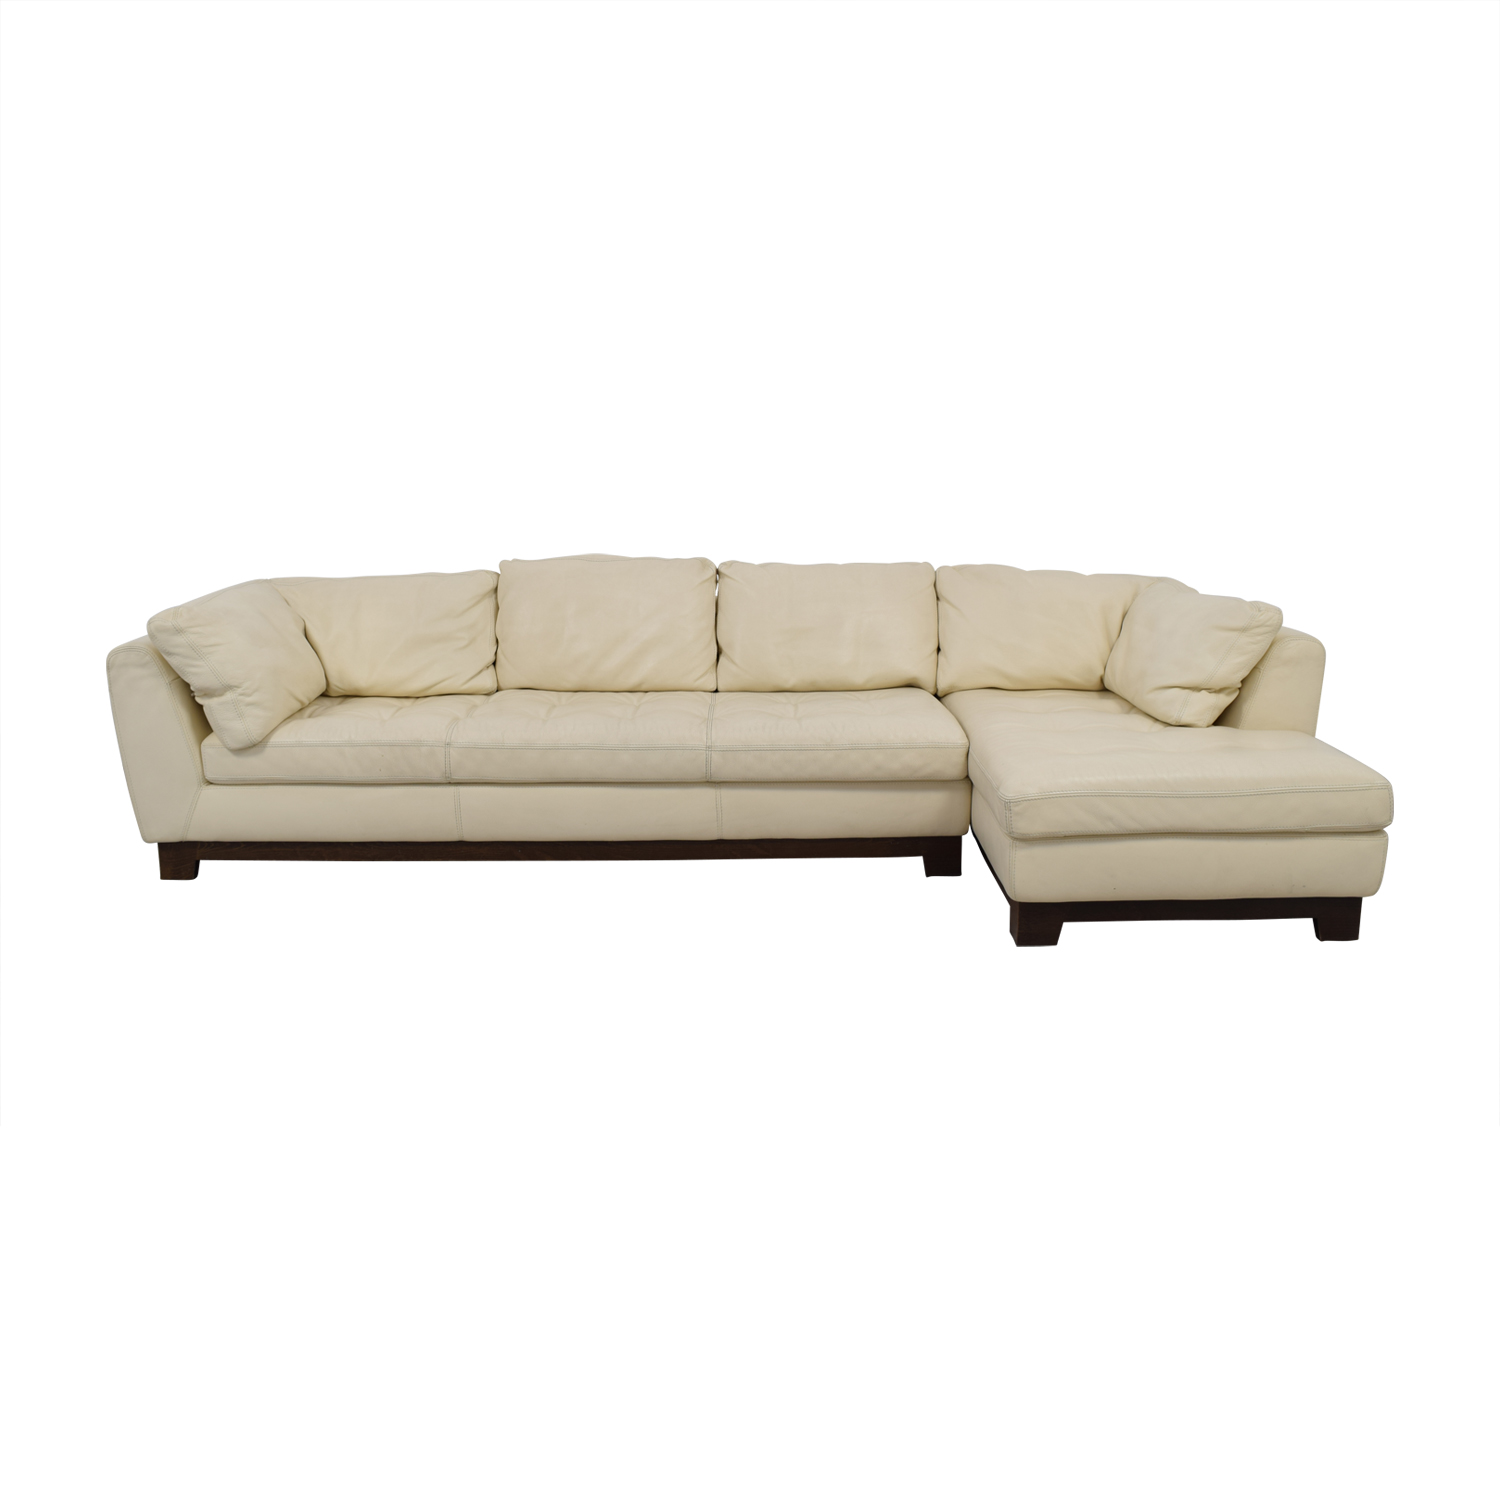 Roche Bobois Chaises 89 Off Roche Bobois Roche Bobois Cream Leather Chaise Sectional